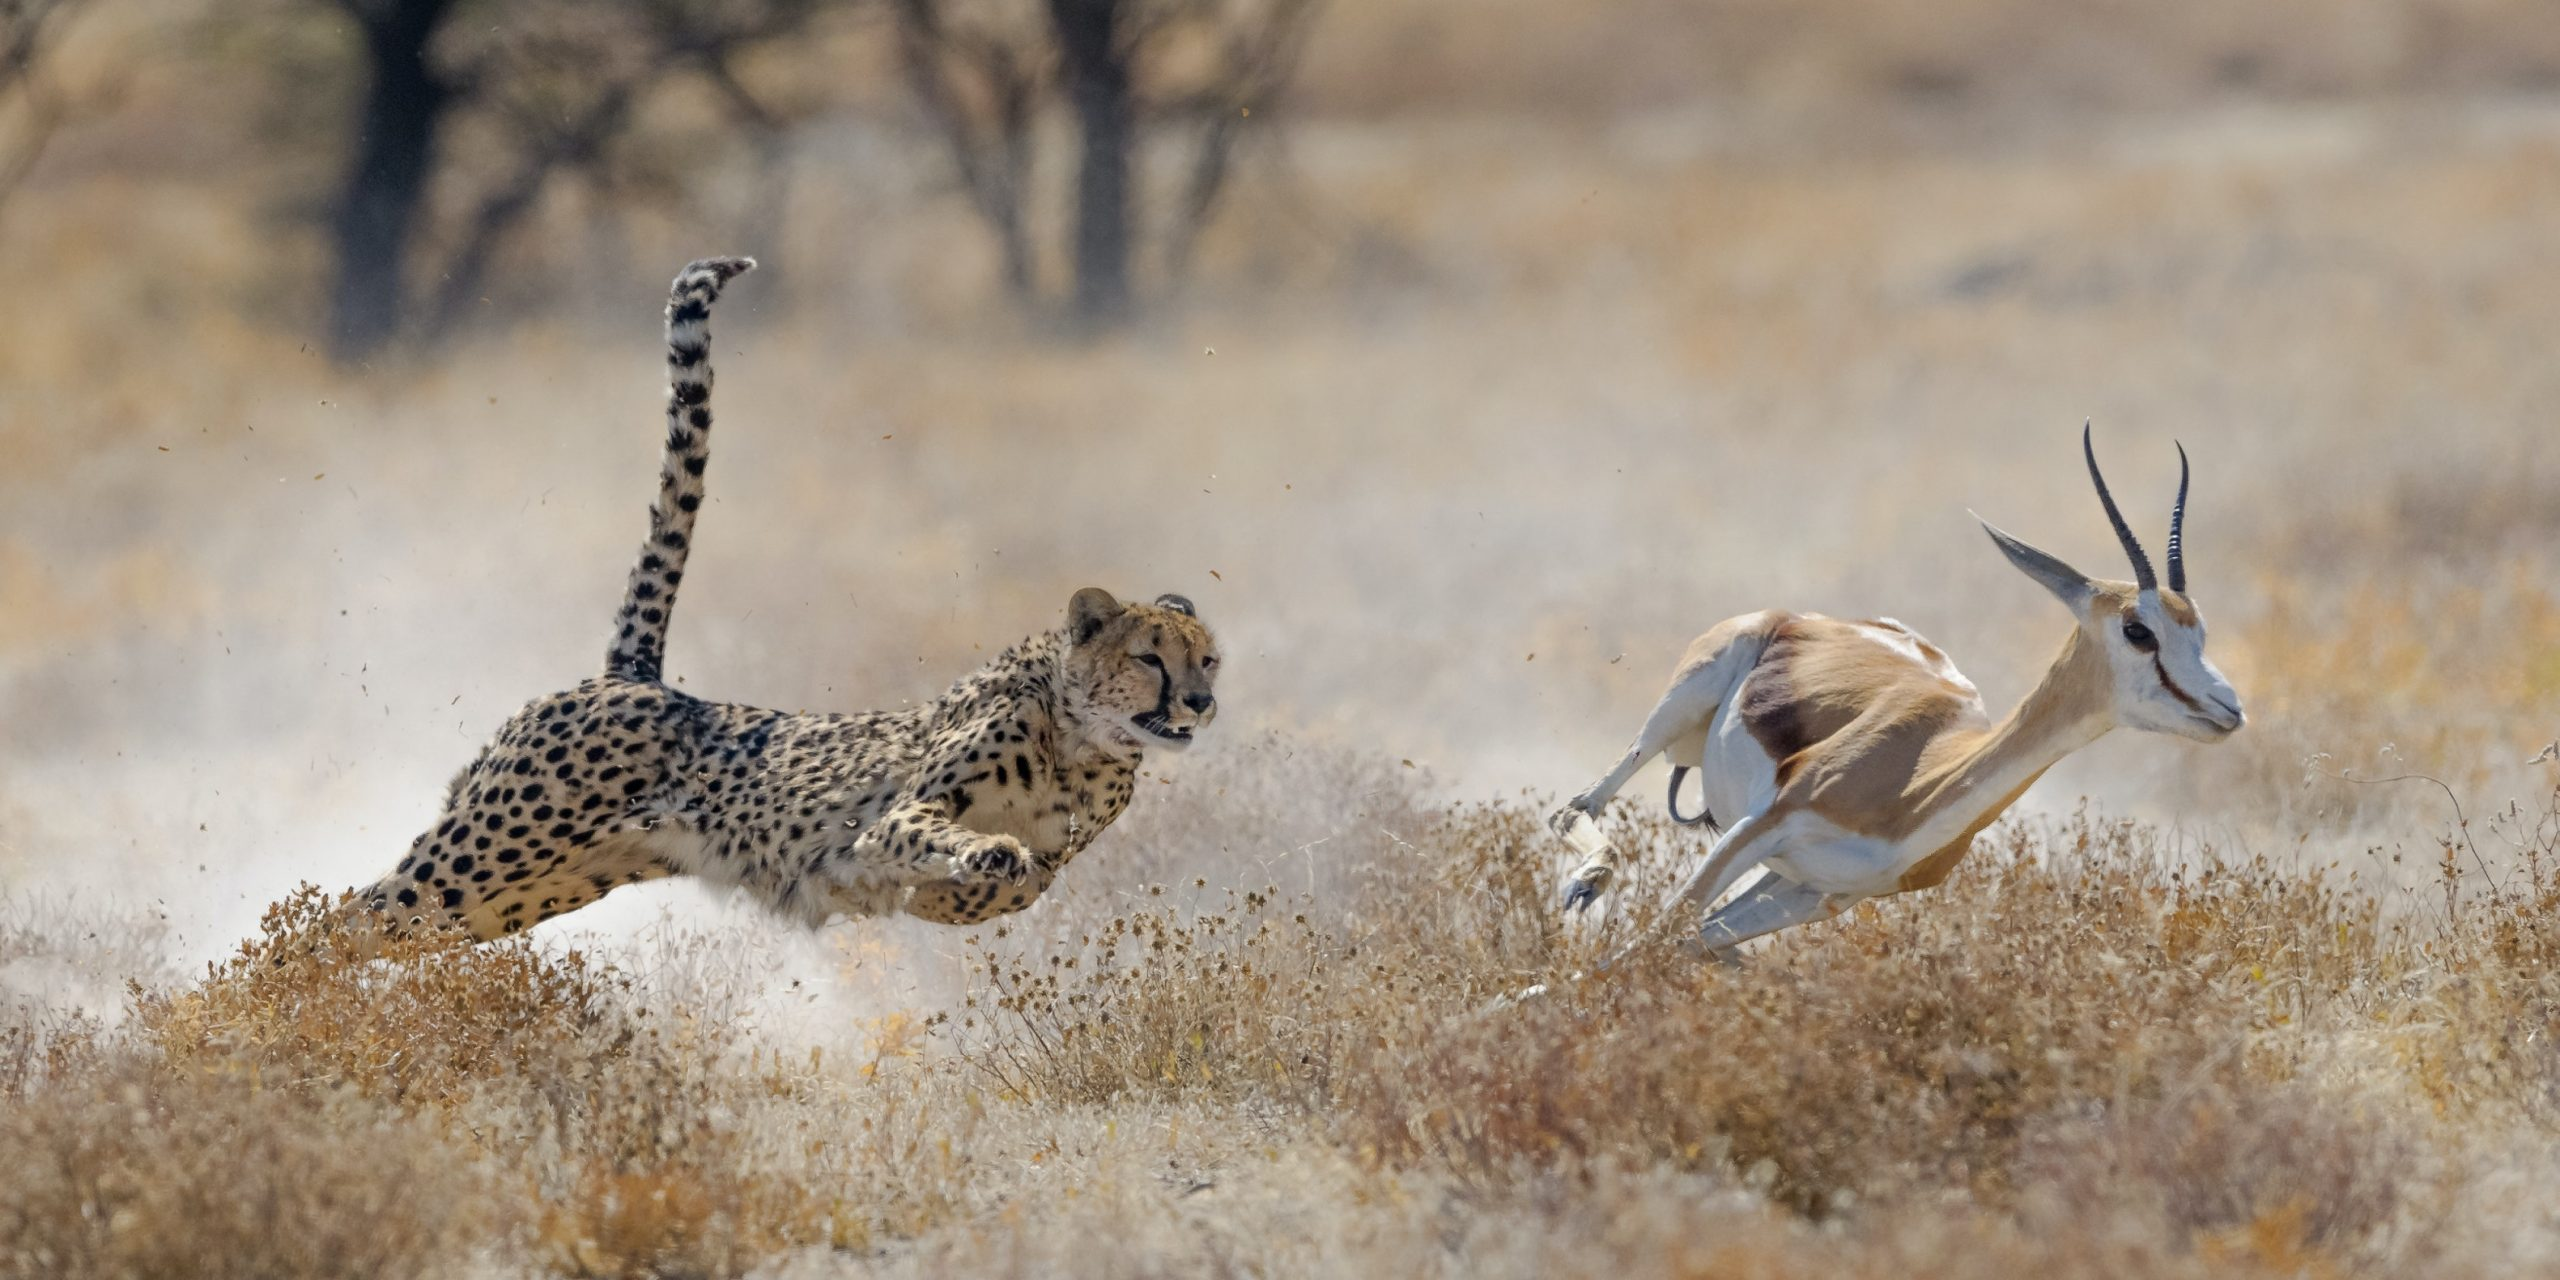 A cheetah chases after a small antelope.